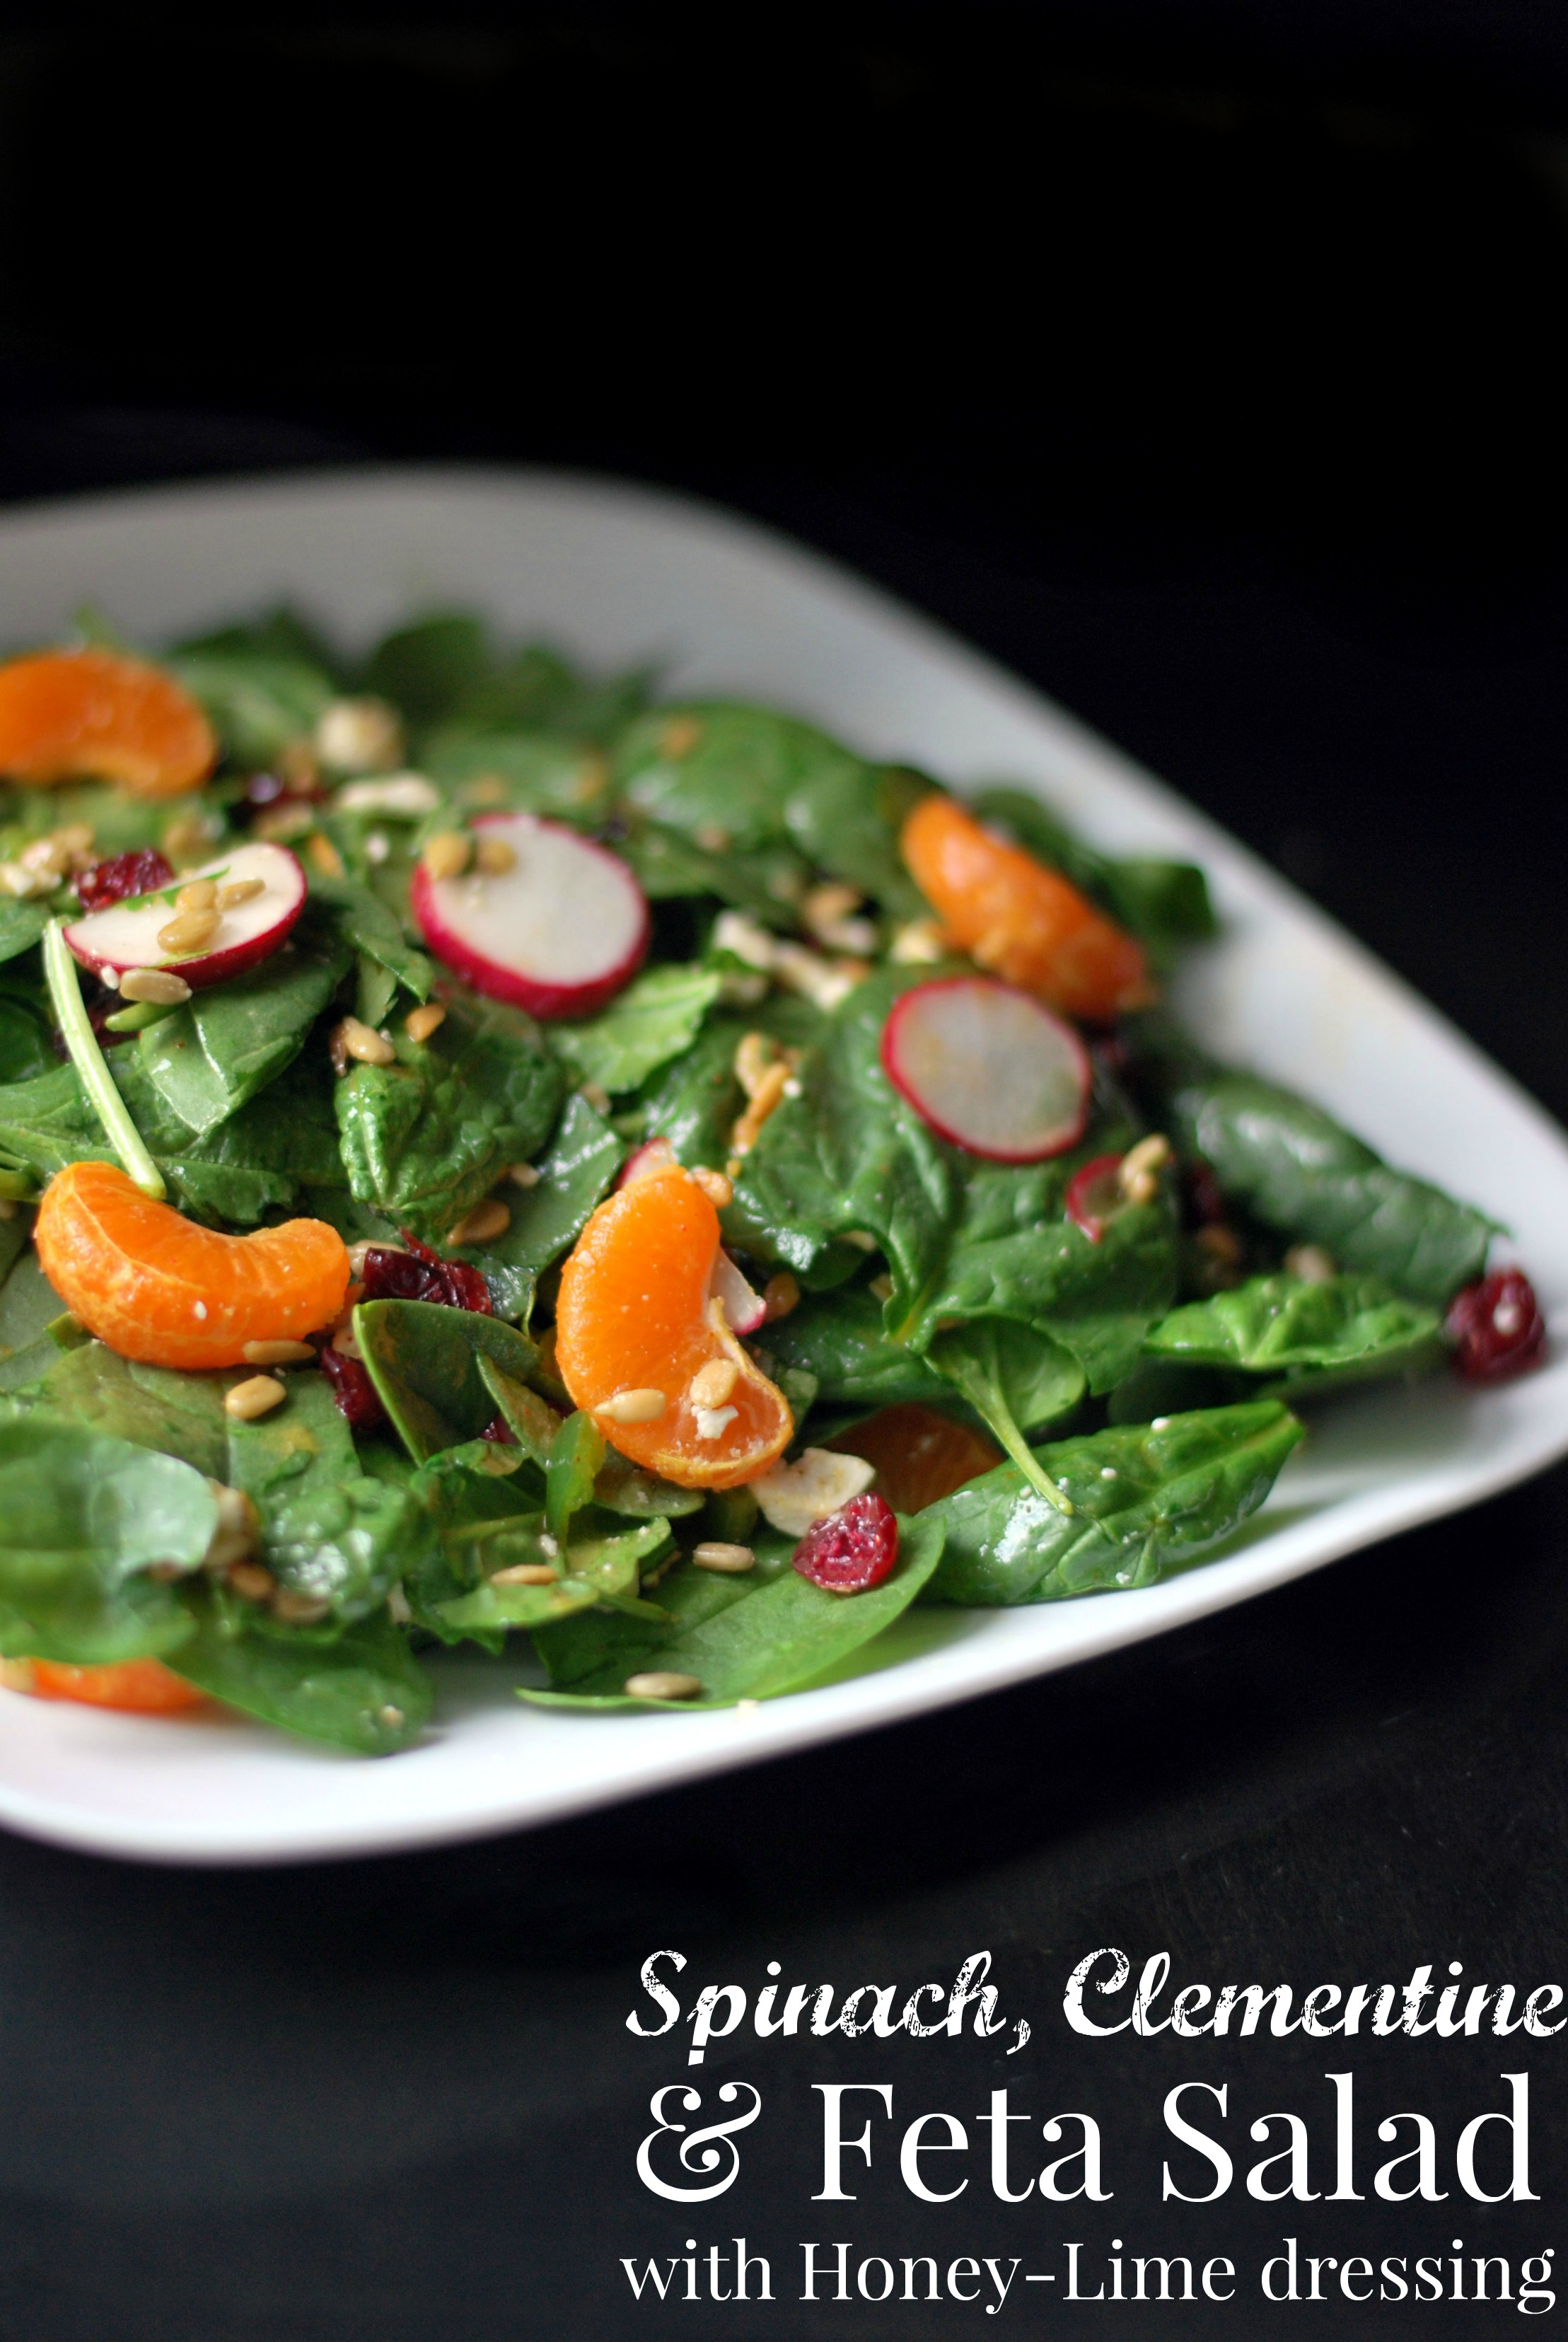 Spinach, Clementine & Feta Salad with Honey-Lime Dressing - Aunt Bee'...